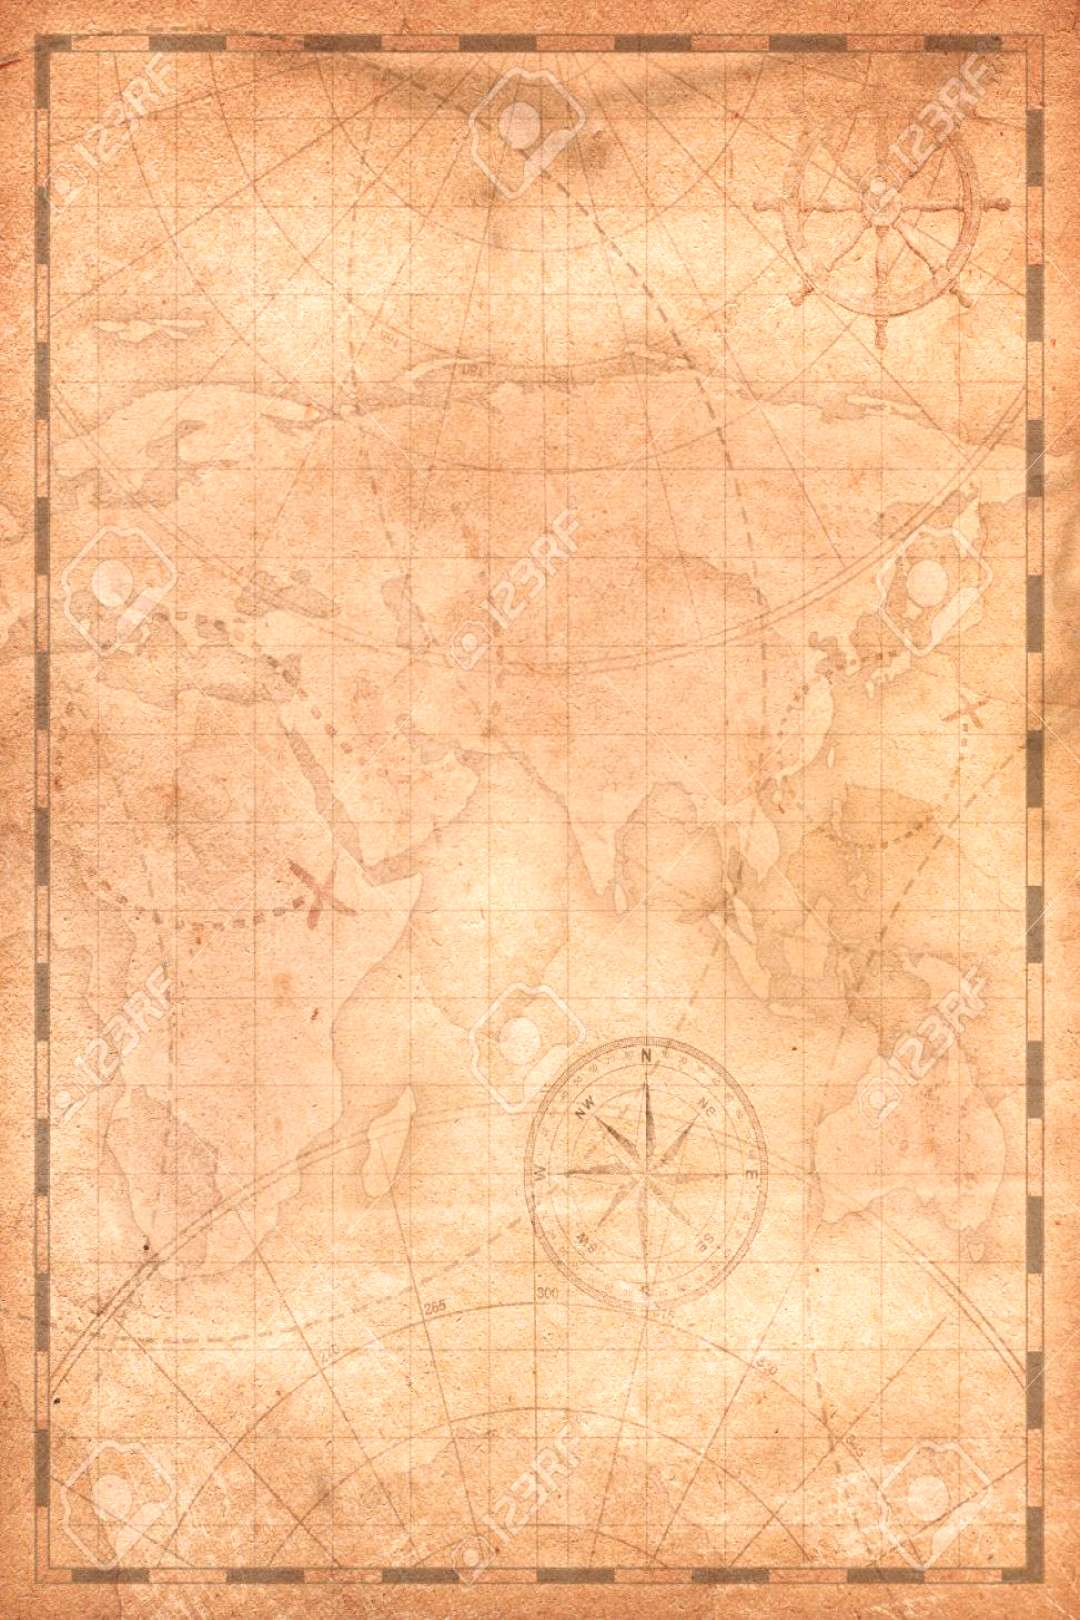 2014_07_01_map_03_s2014_07_01_map_03_s | I found an old treasure map! letamp39s go… | flickrwaterc